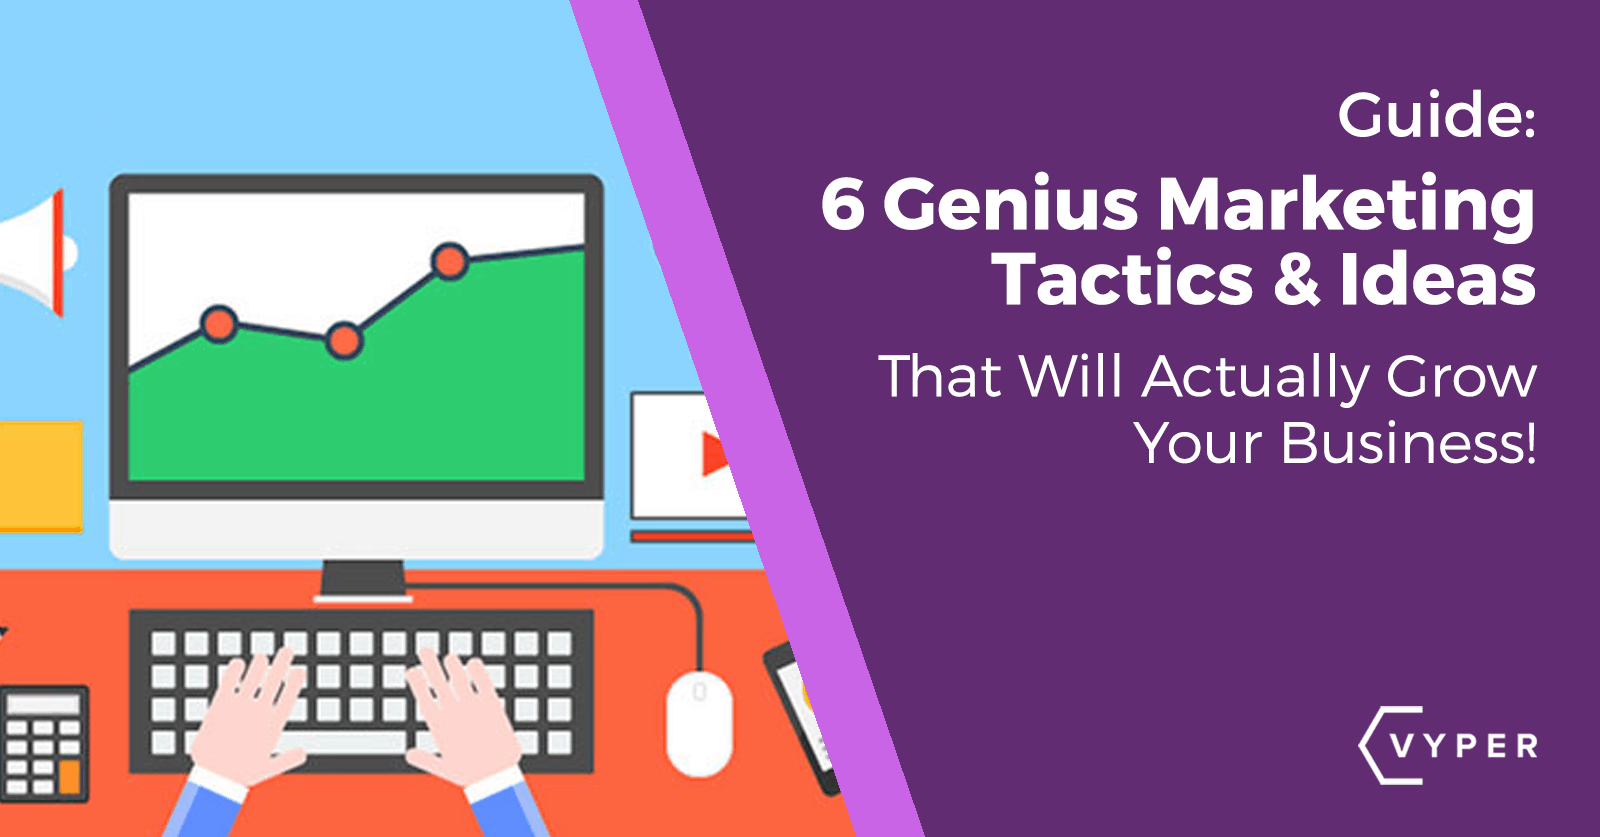 6 Marketing Ideas Tactics That Will Actually Grow Your Business!